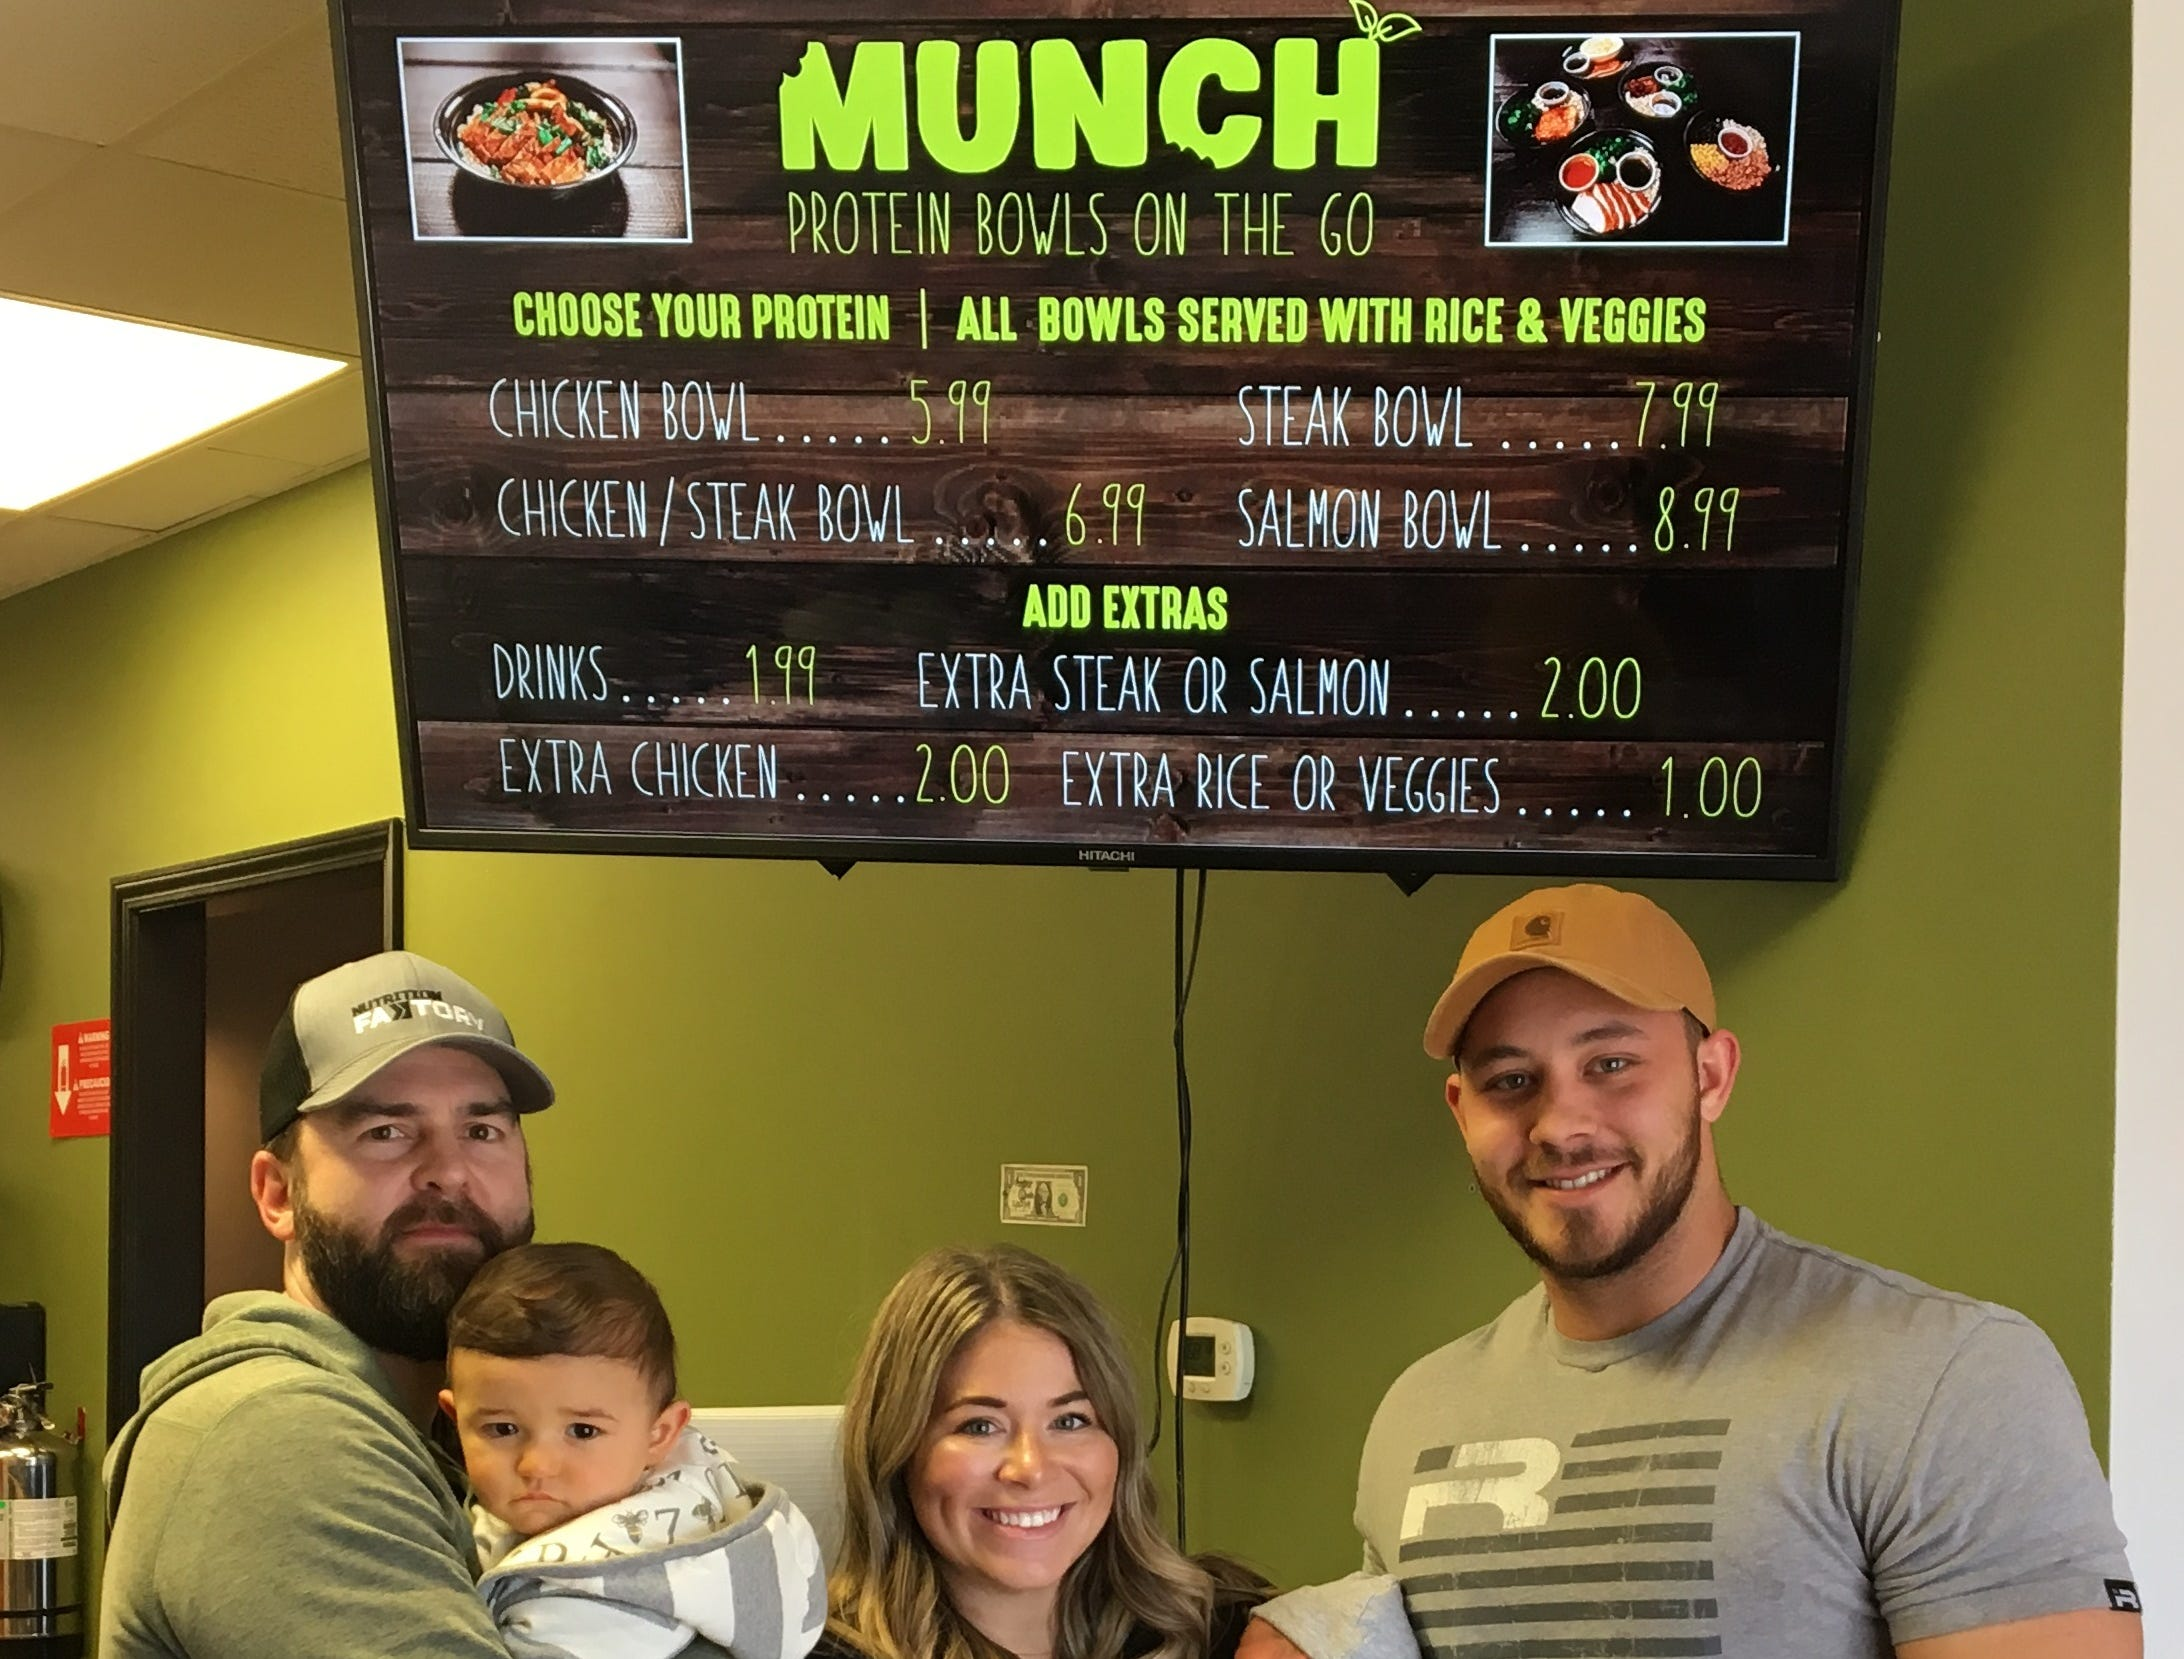 Getting ready for the opening of Munch Murfreesboro, a restaurant that serves fast healthy meals, are, from left, Mike Bires holding son James, and Julia and Ian Mitzelfeld with Ella and Asher.